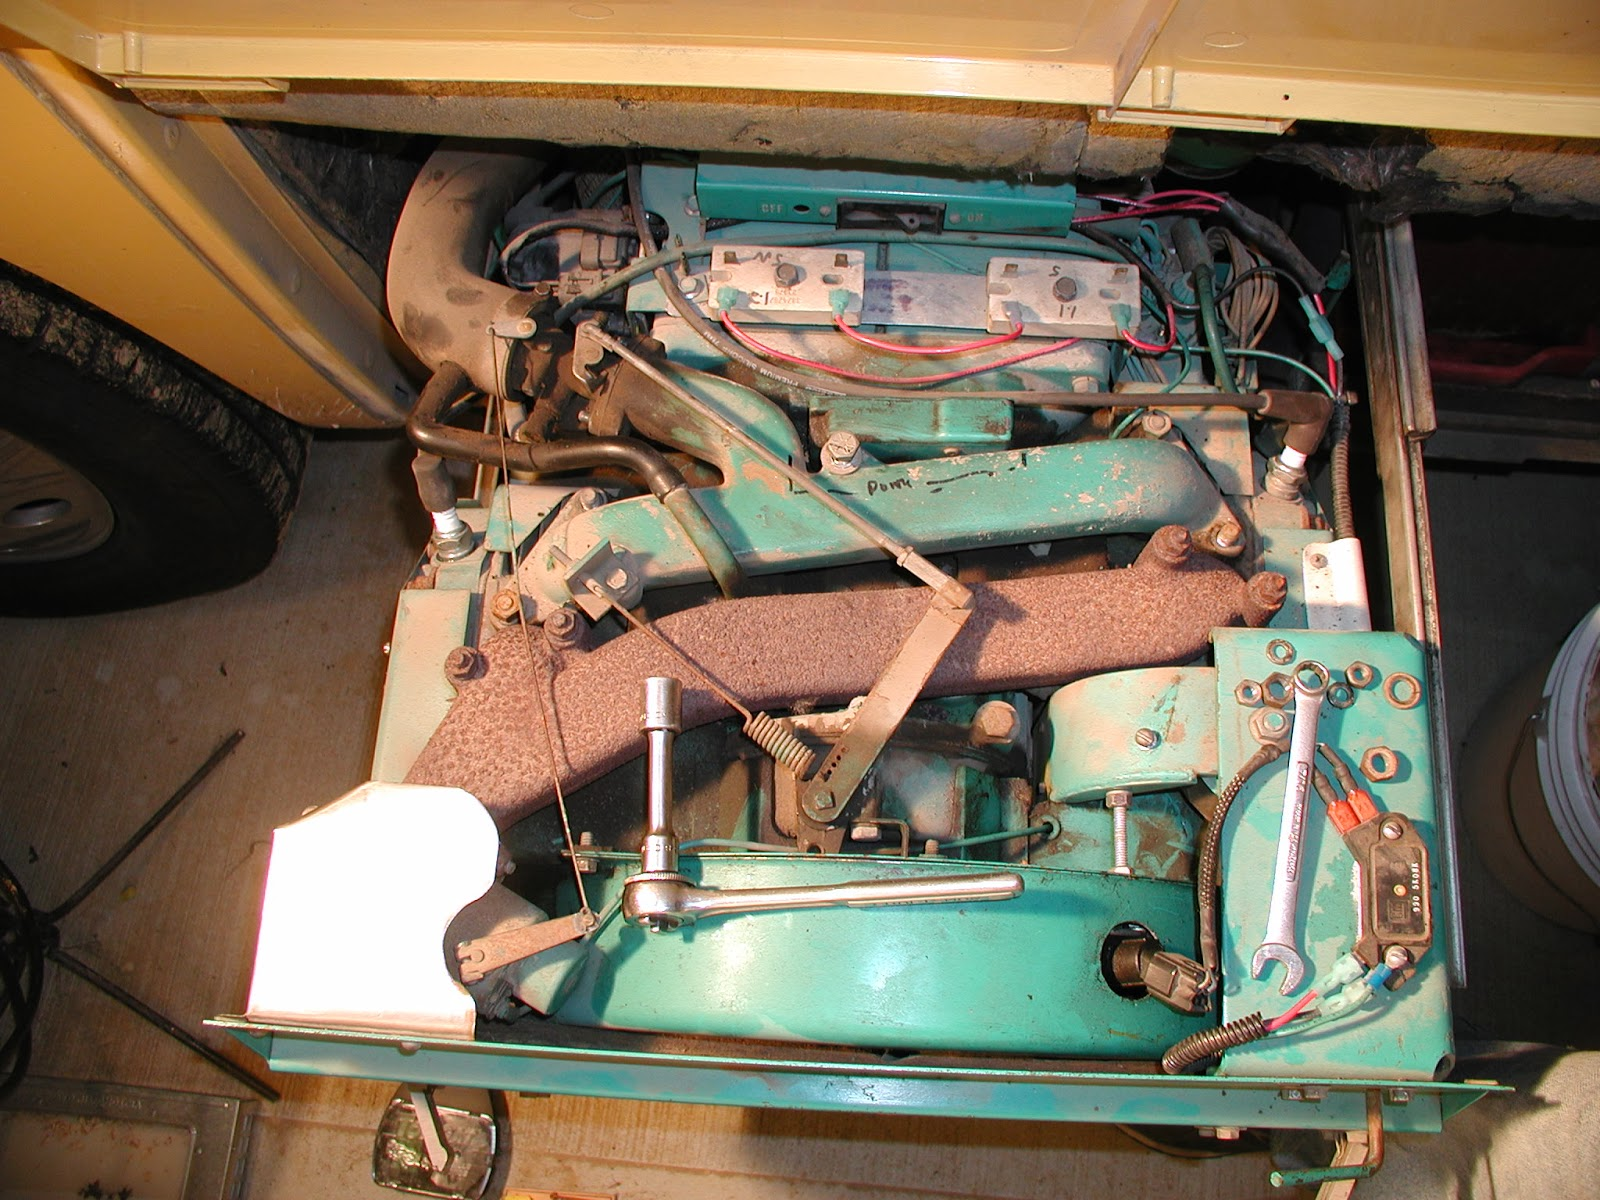 Wally&Sue: Skid steer on its side, Onan gets a modification